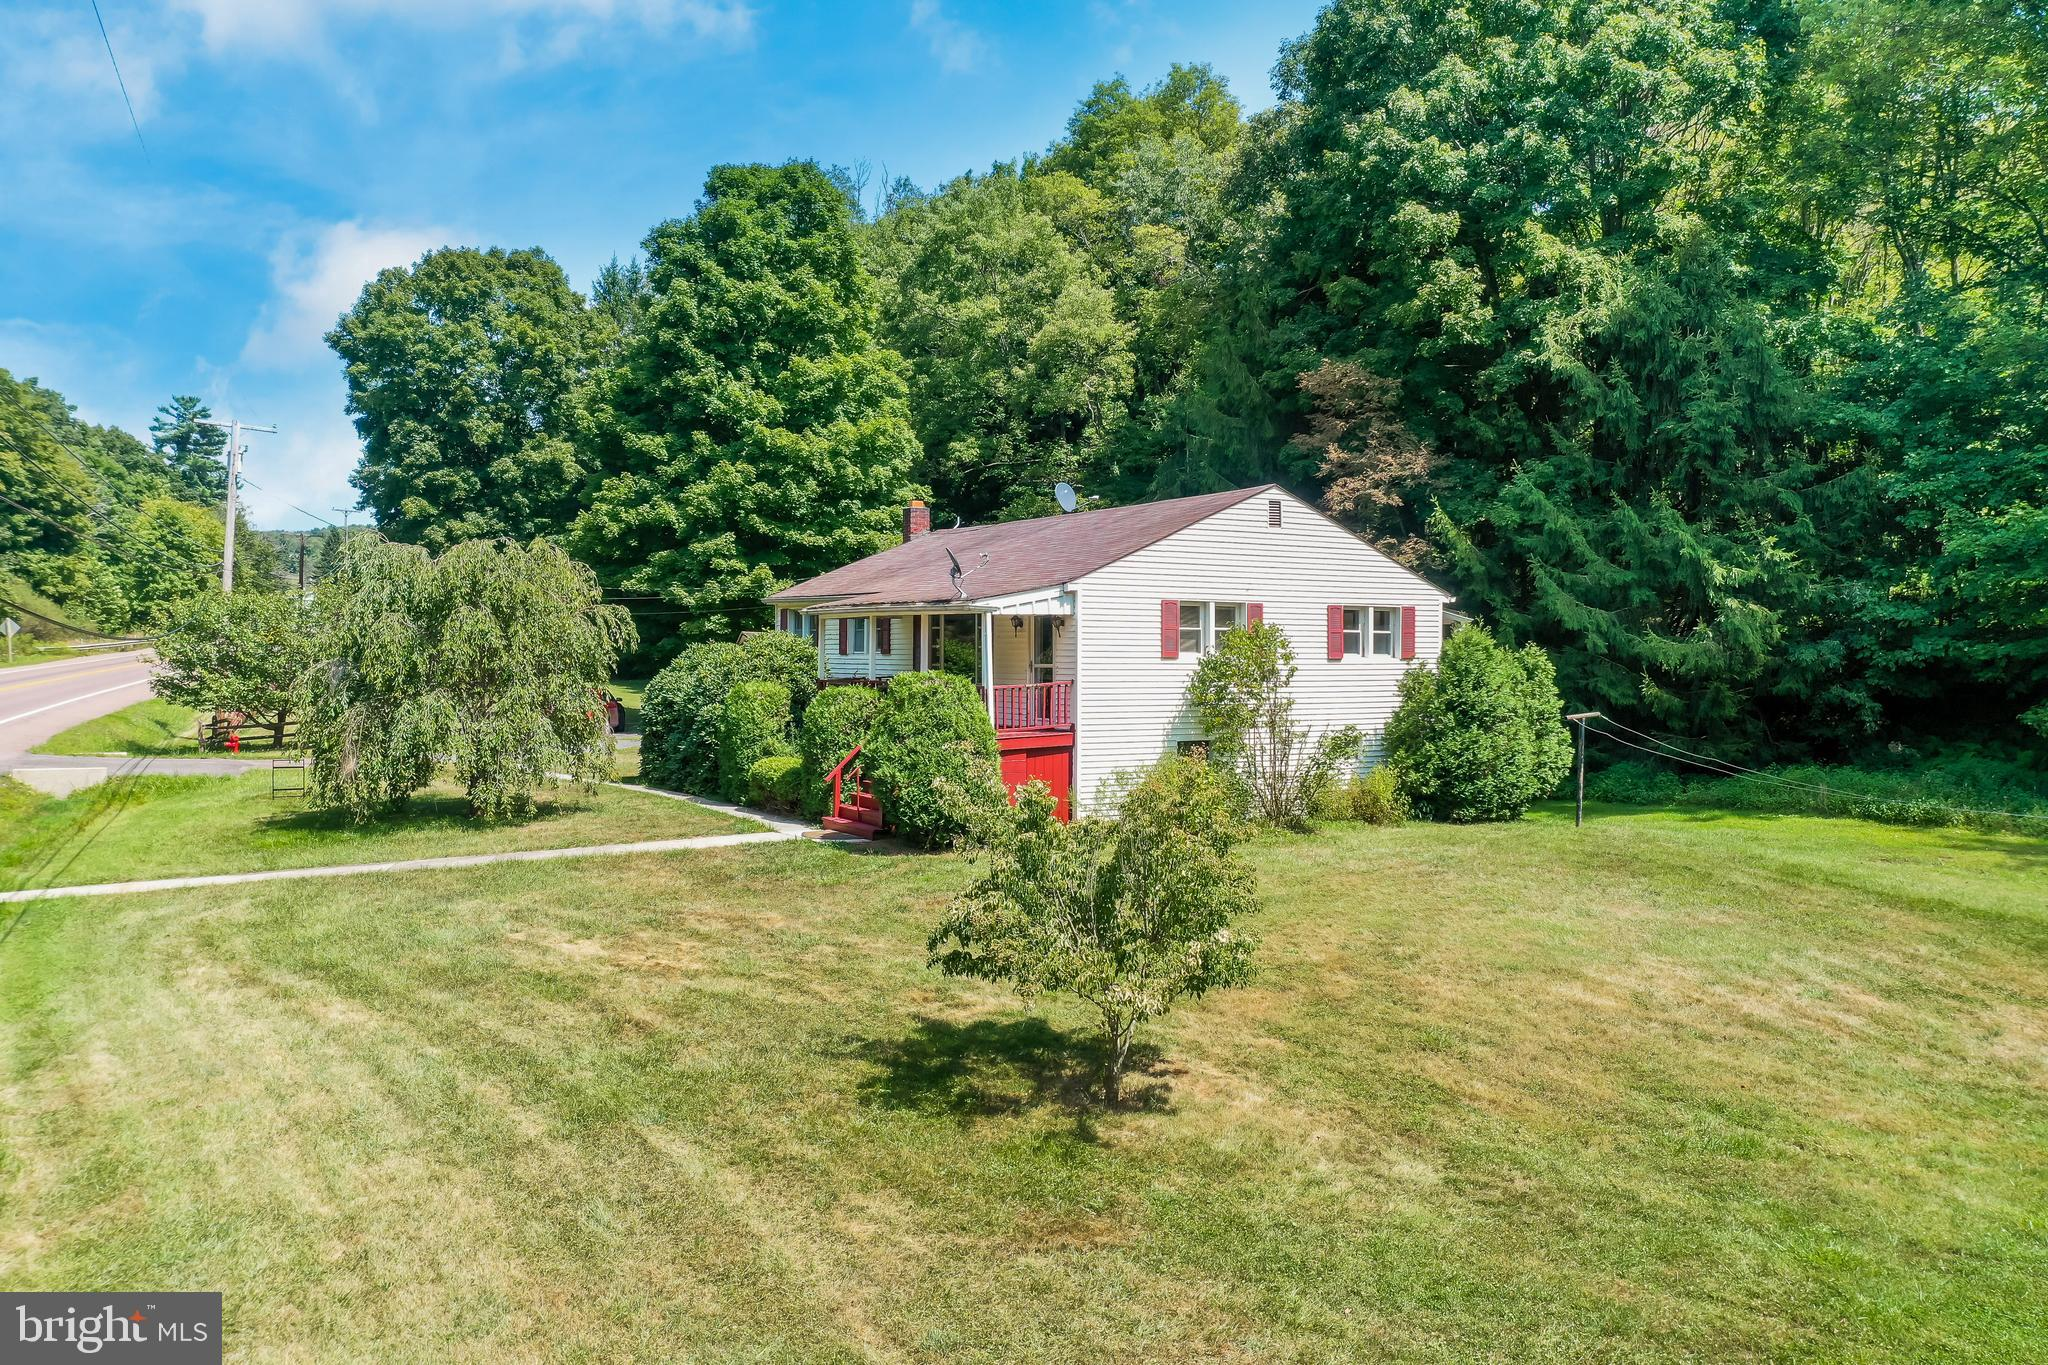 14620 NEW GEORGES CREEK ROAD, MIDLAND, MD 21542